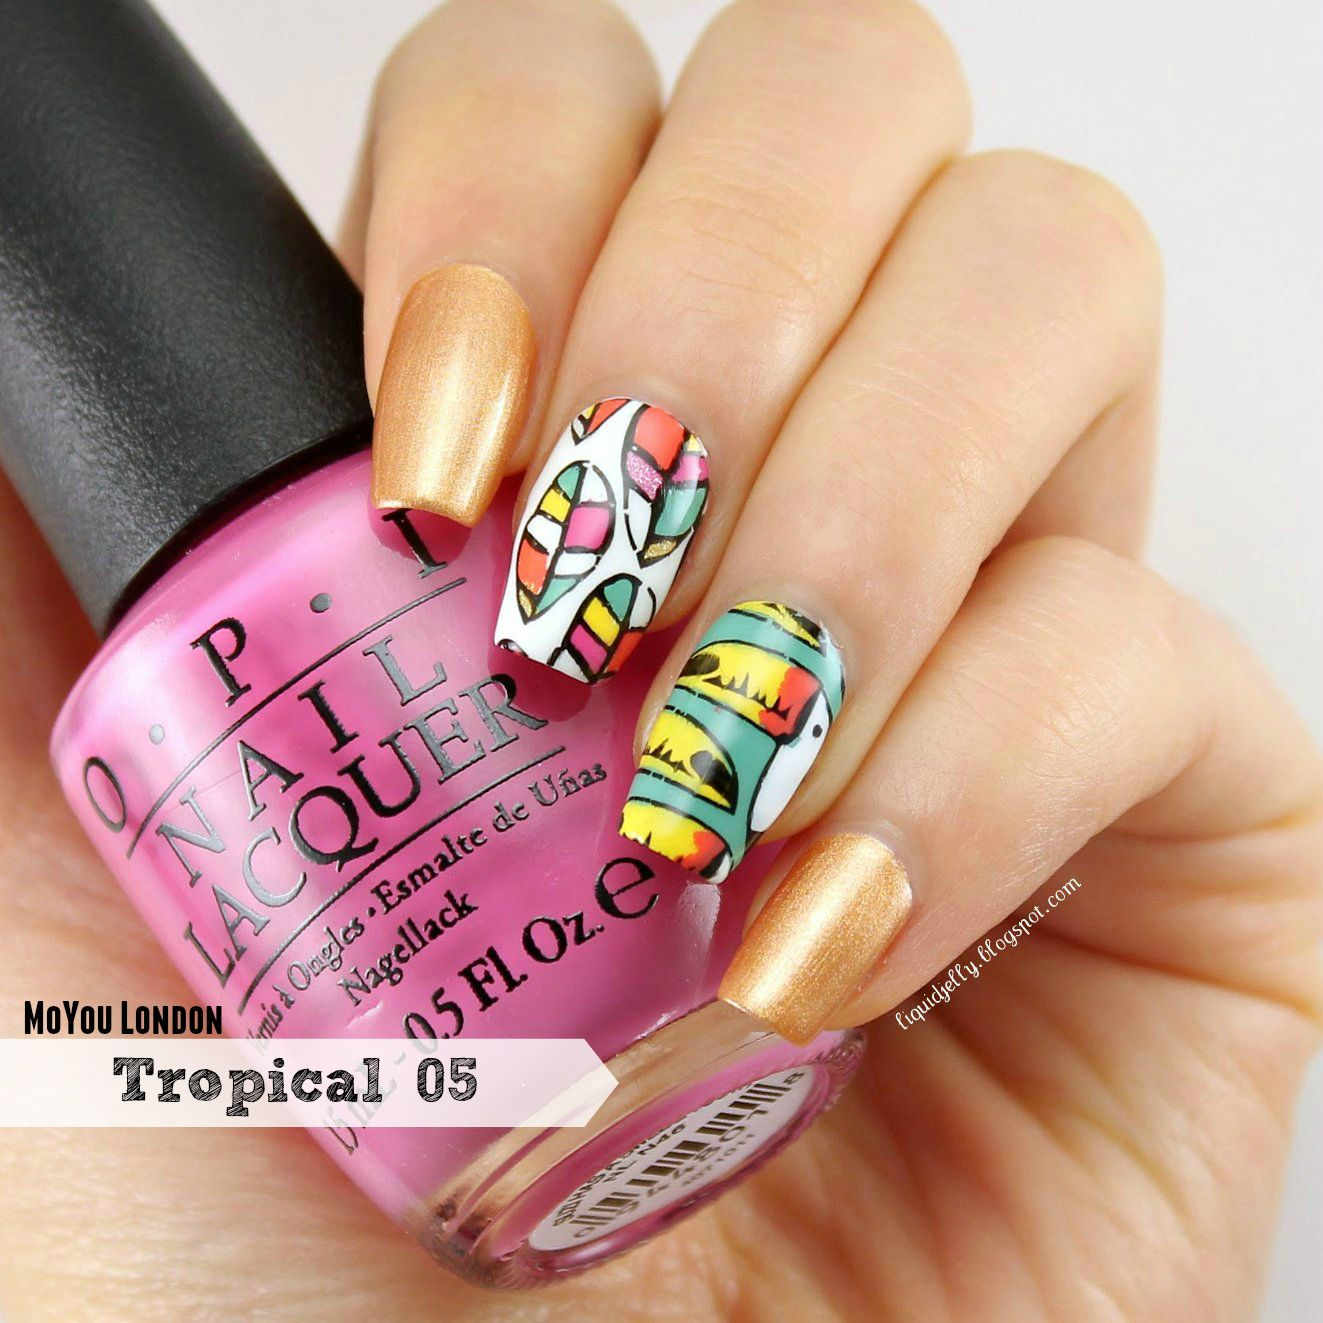 Cute French Polish Shellac Nails Tall Opi Blue Nail Polish Colors Square Nail Art With Acrylic Paint Monthly Nail Polish Box Old Strawberry Nail Polish GrayMaybelline Nail Polish Colors 1000  Images About Moyou Londen On Pinterest | Nail Art Blog And ..